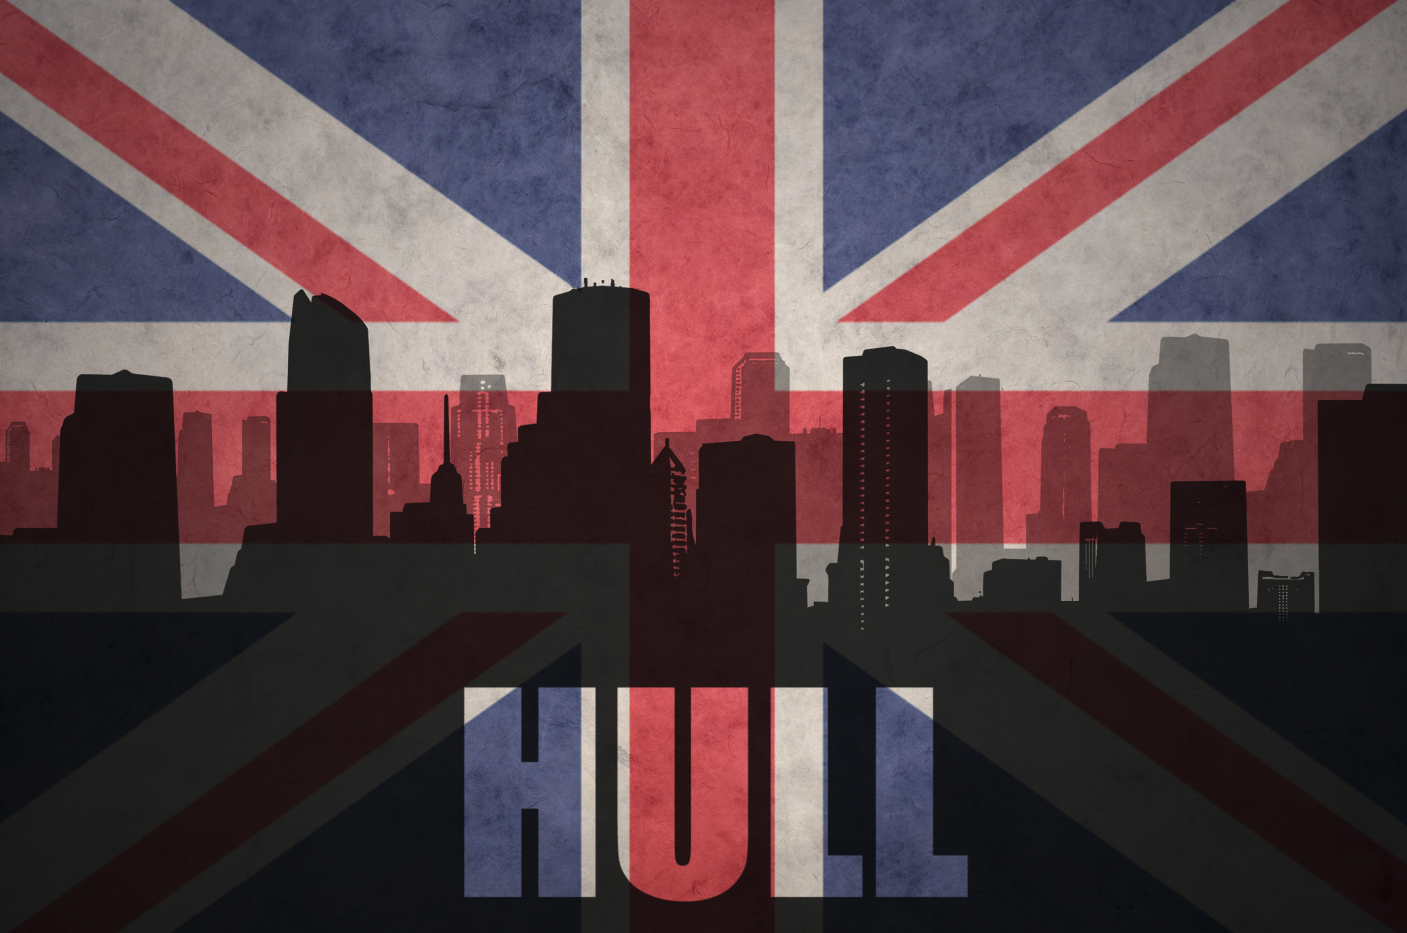 Facts on investment into Hull